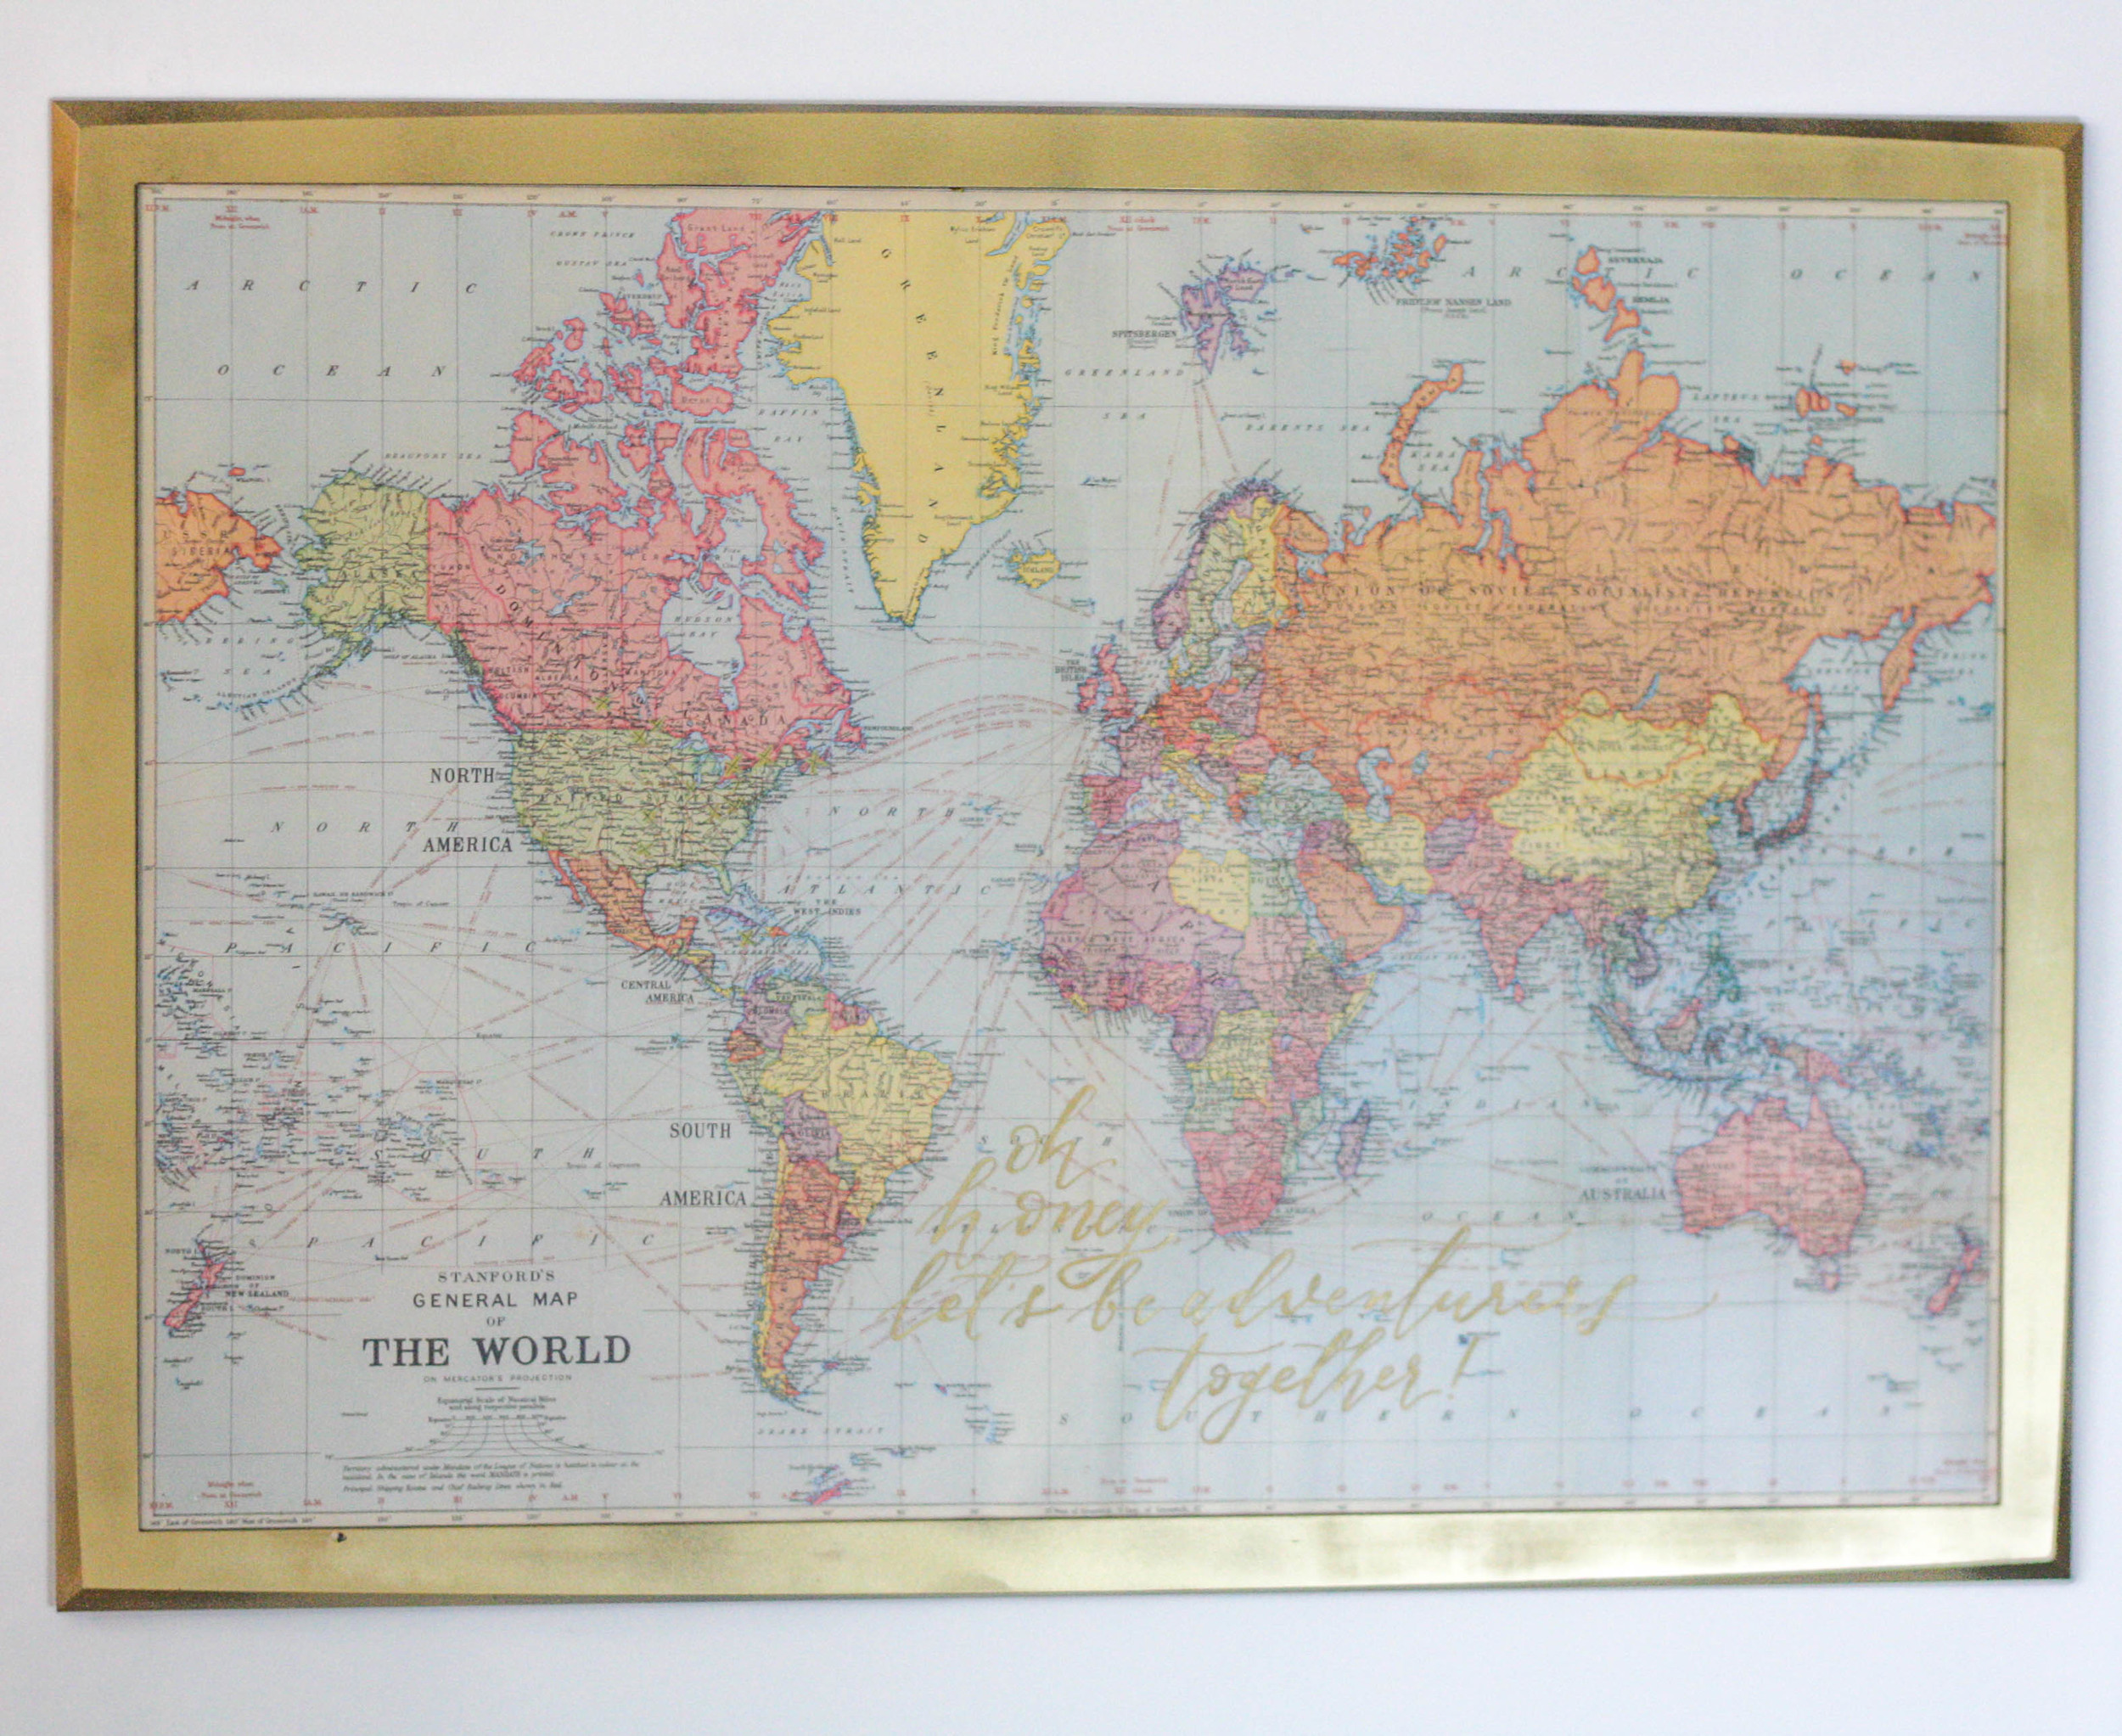 """""""Oh honey, let's be adventurers together!"""" - One of my favourite pieces in our home - I marked off all the places we've travelled to so far."""